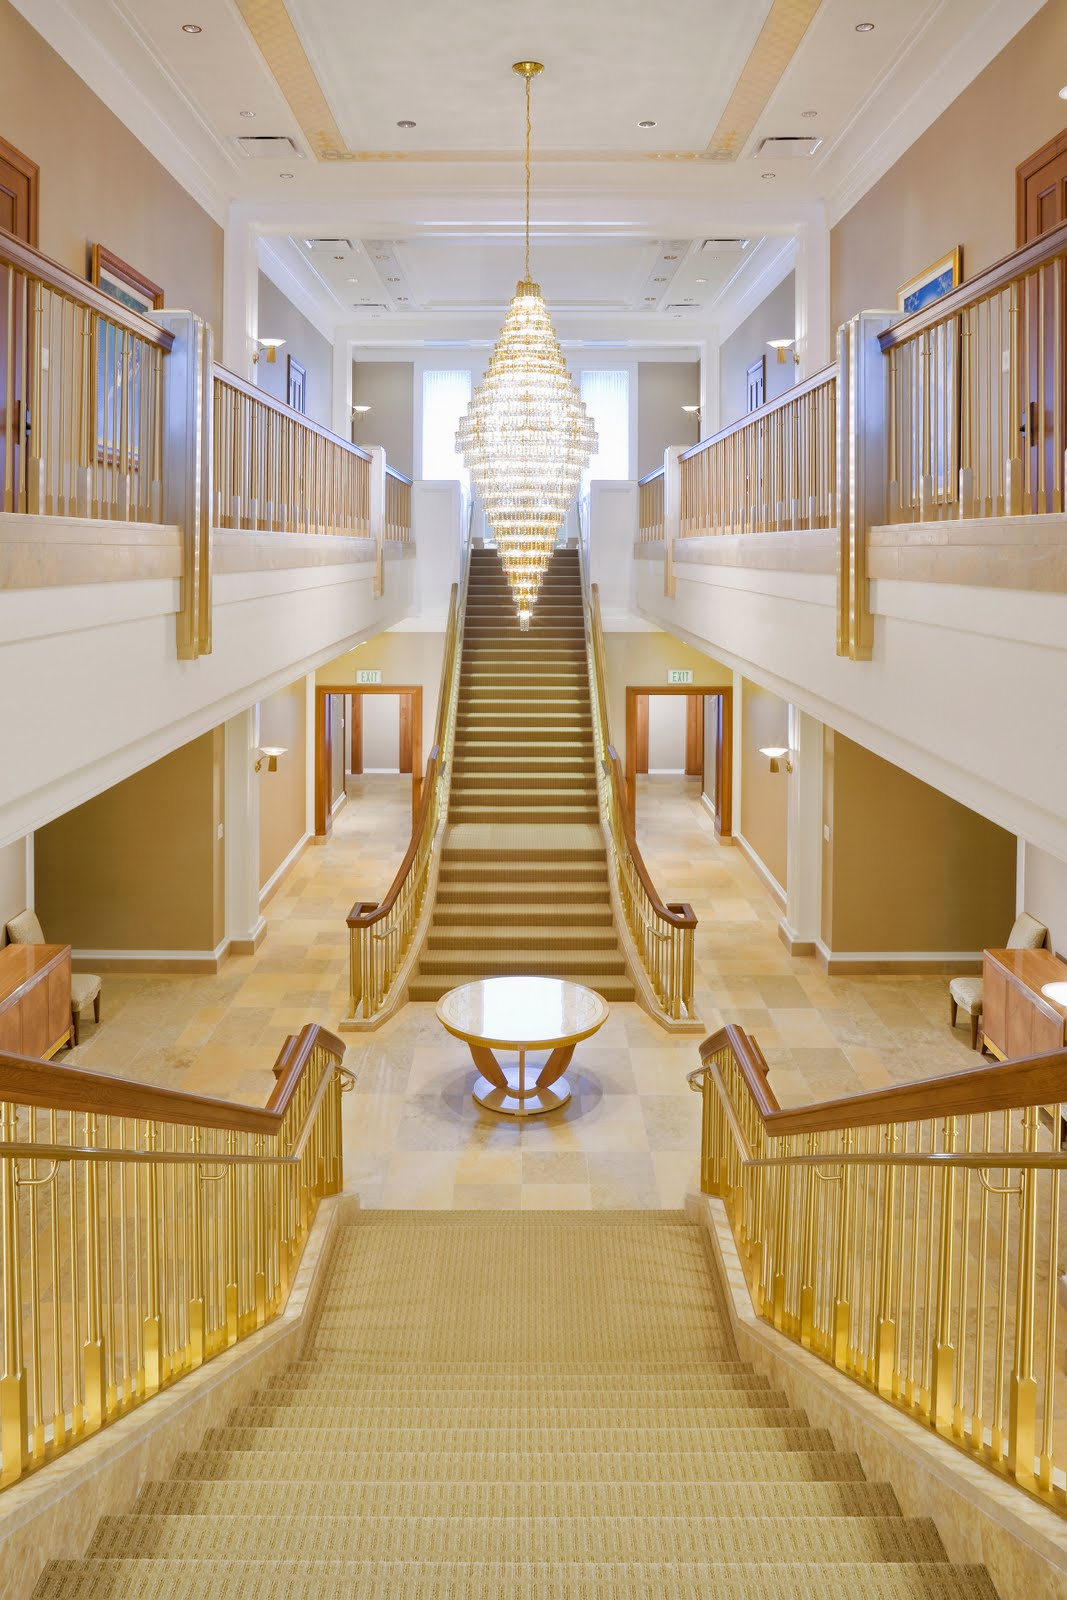 Stained glass and grand staircases an inside look at lds for Temple inside home designs